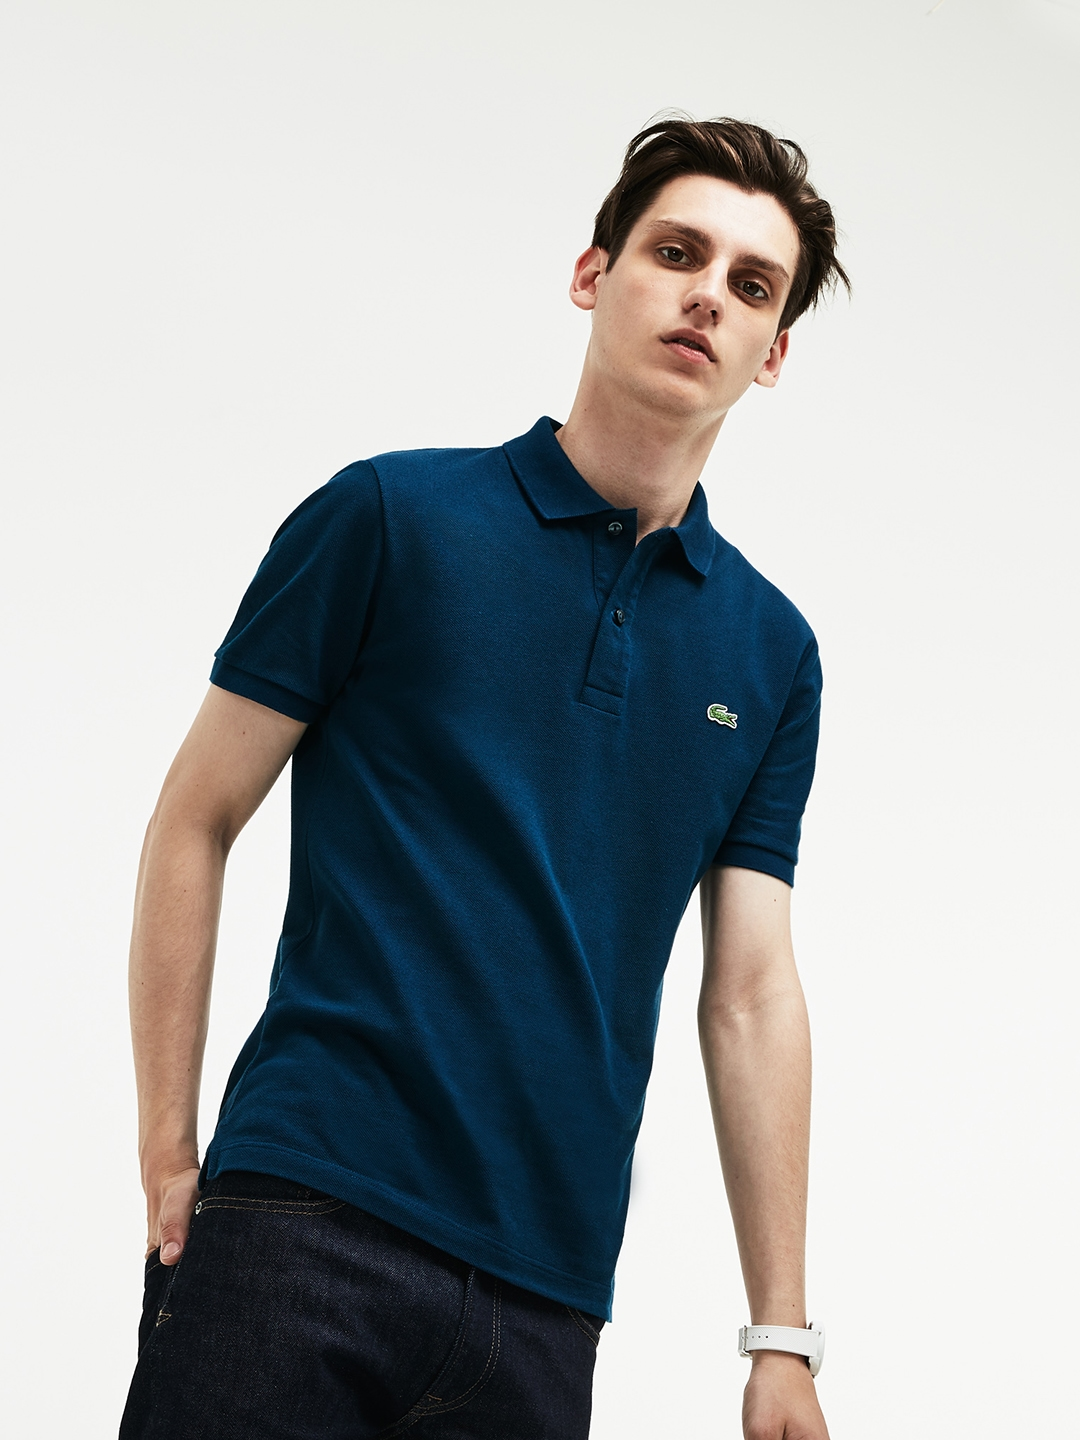 b523e06b Buy Lacoste Men Teal Solid Polo Collar T Shirt - Tshirts for Men ...